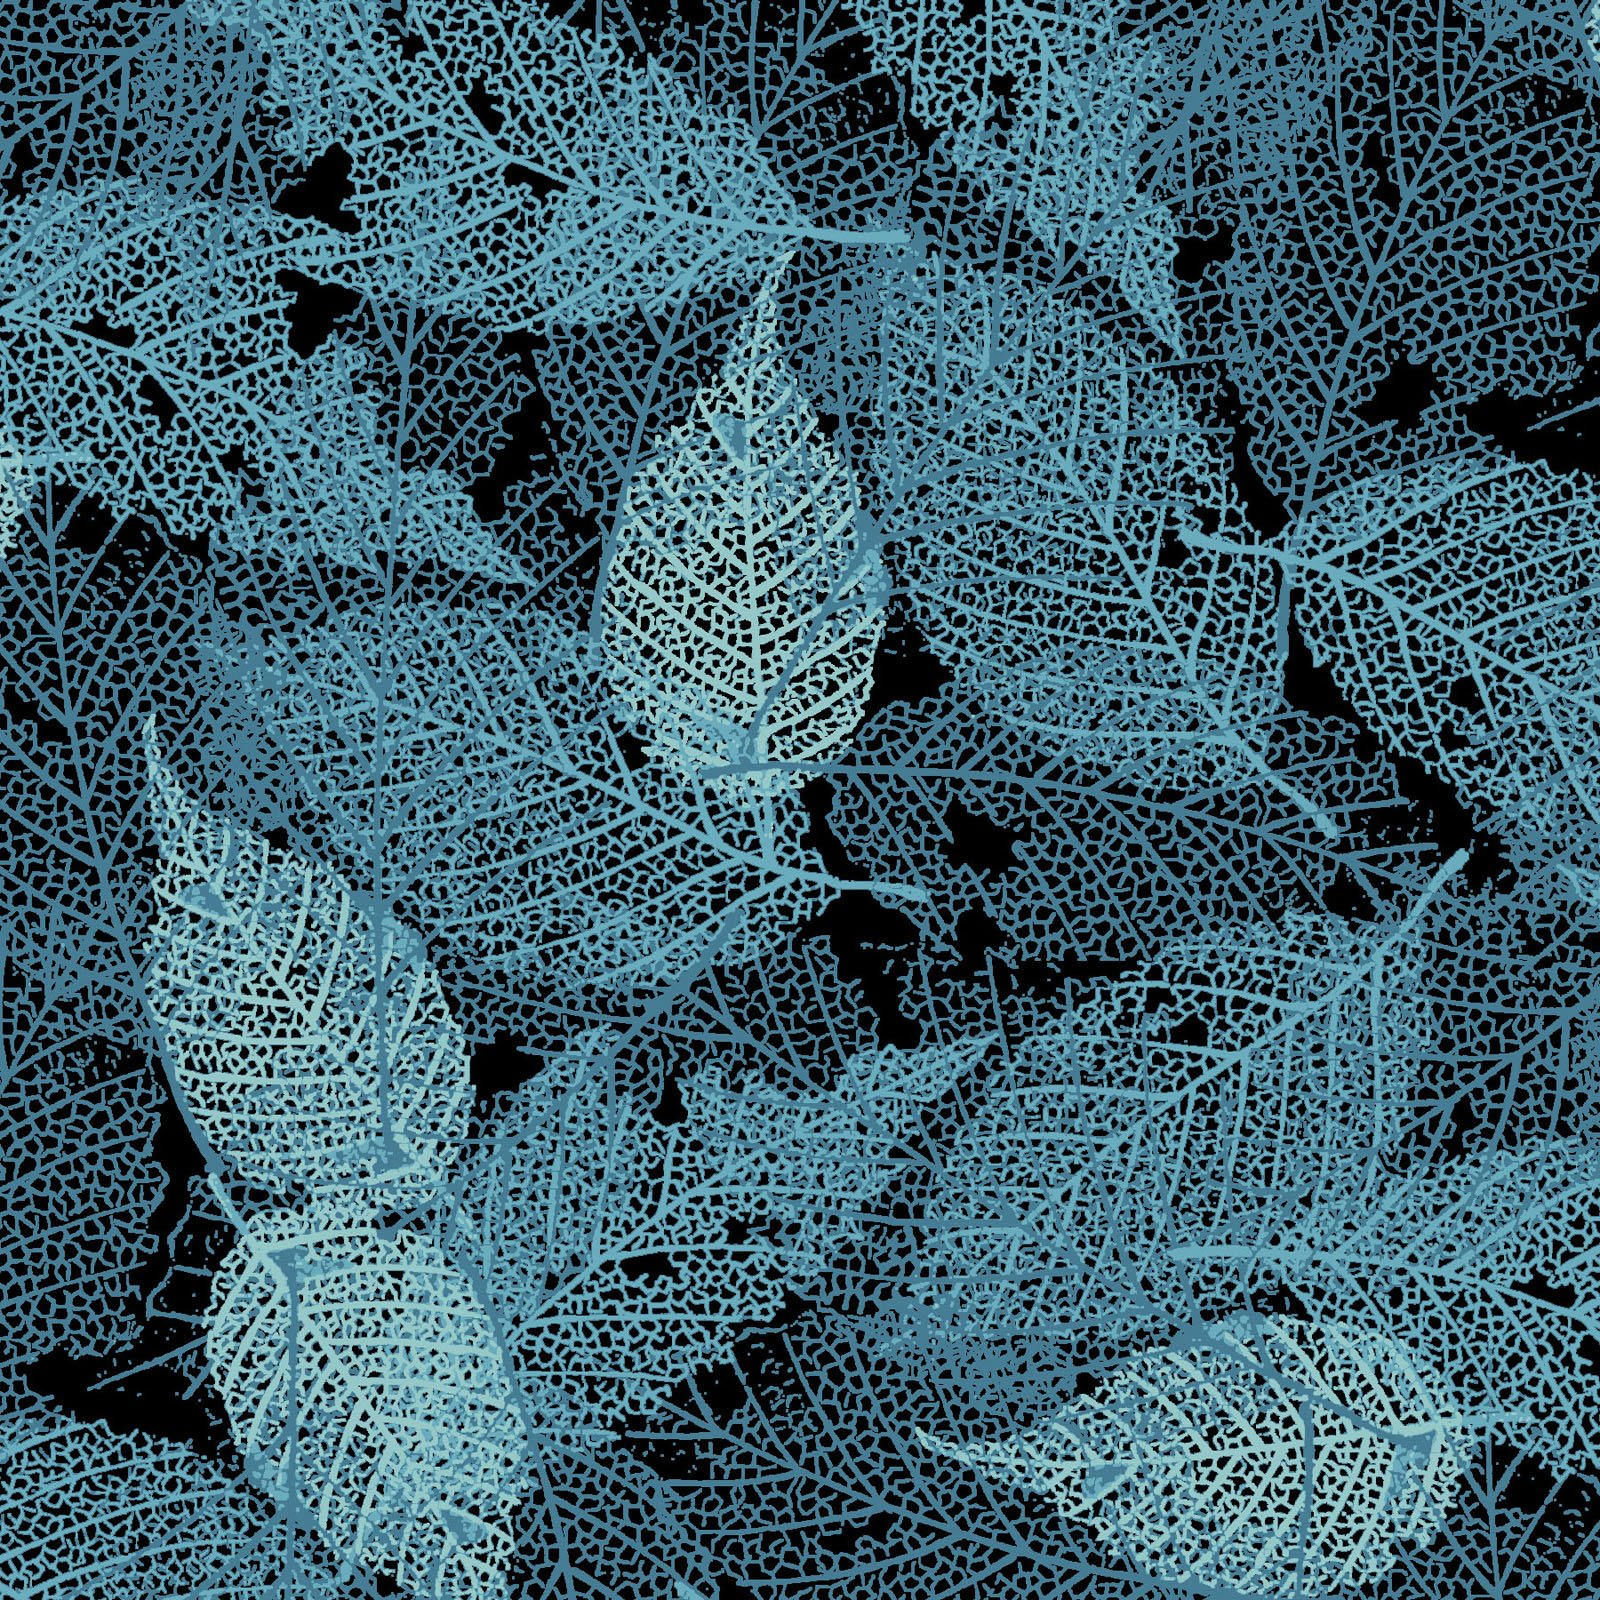 FOLI-4478 T - FOLIAGE BY P&B BOUTIQUE TEXTURE LEAVES TEAL - ARRIVING IN MAY 2021